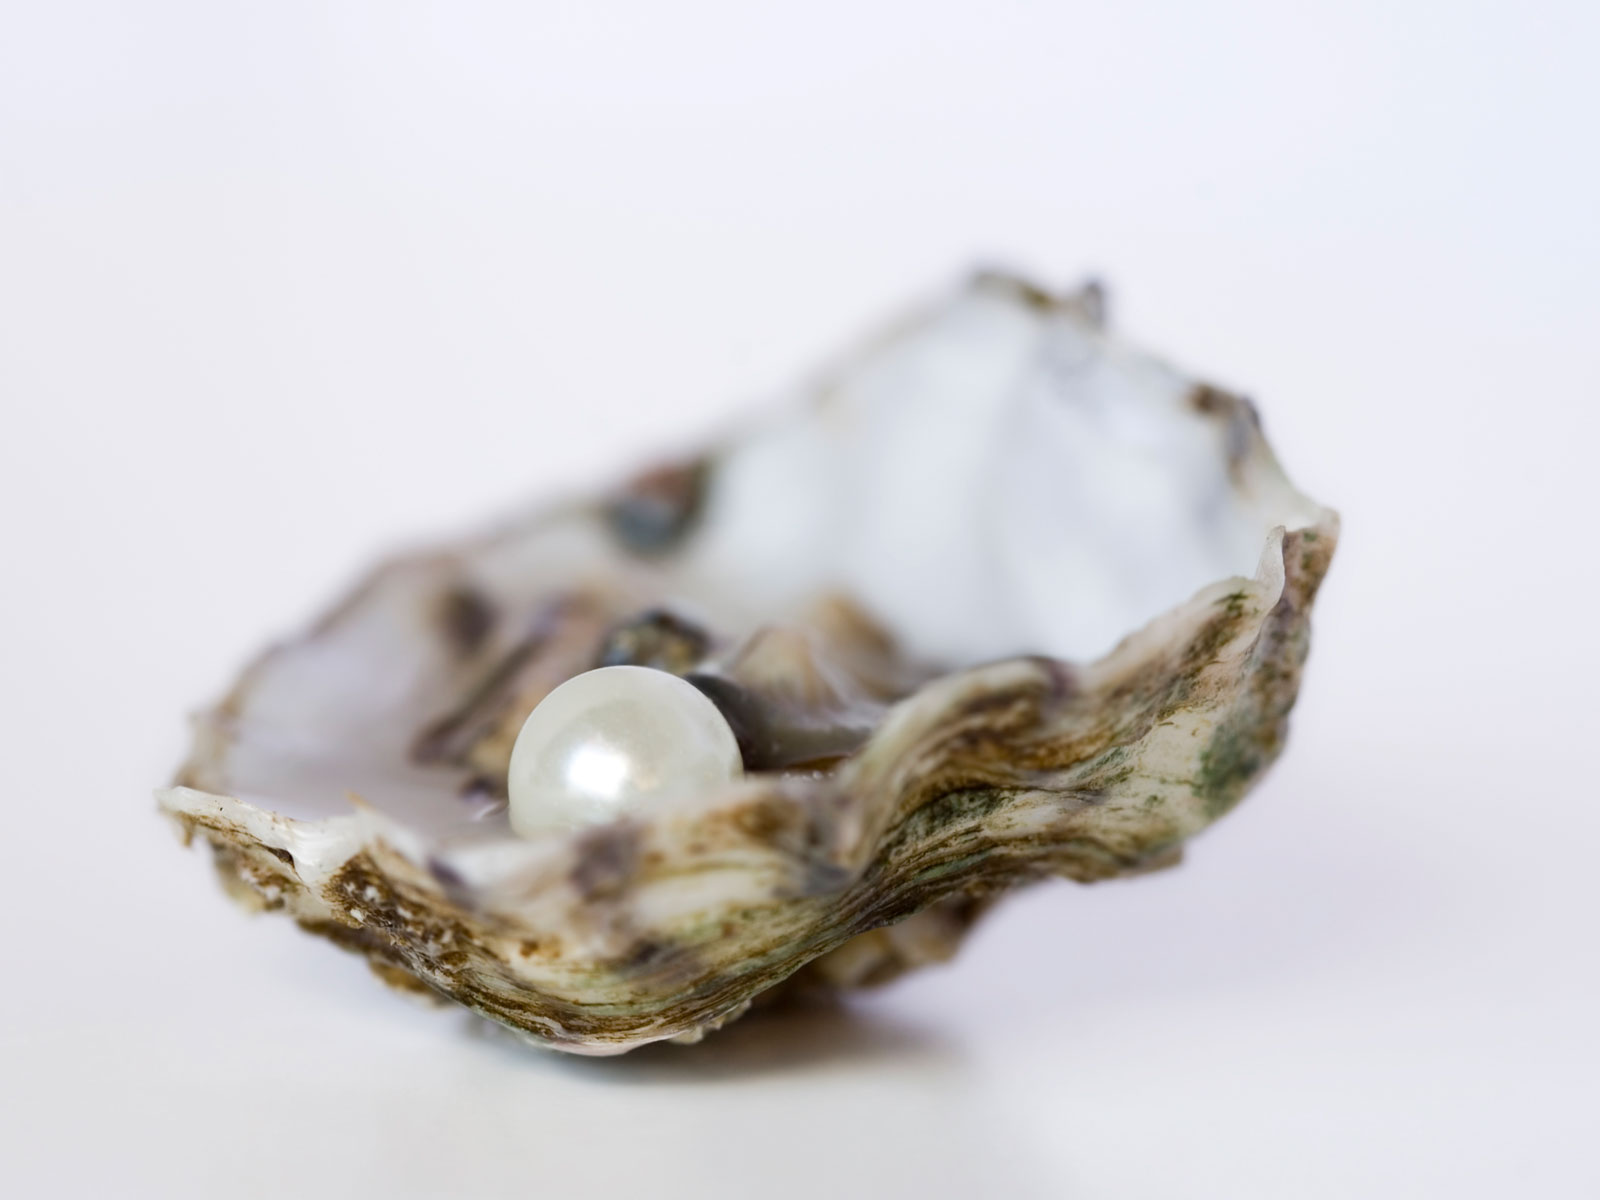 Diner Finds Pearl Worth as Much as $4,000 at Grand Central Oyster Bar